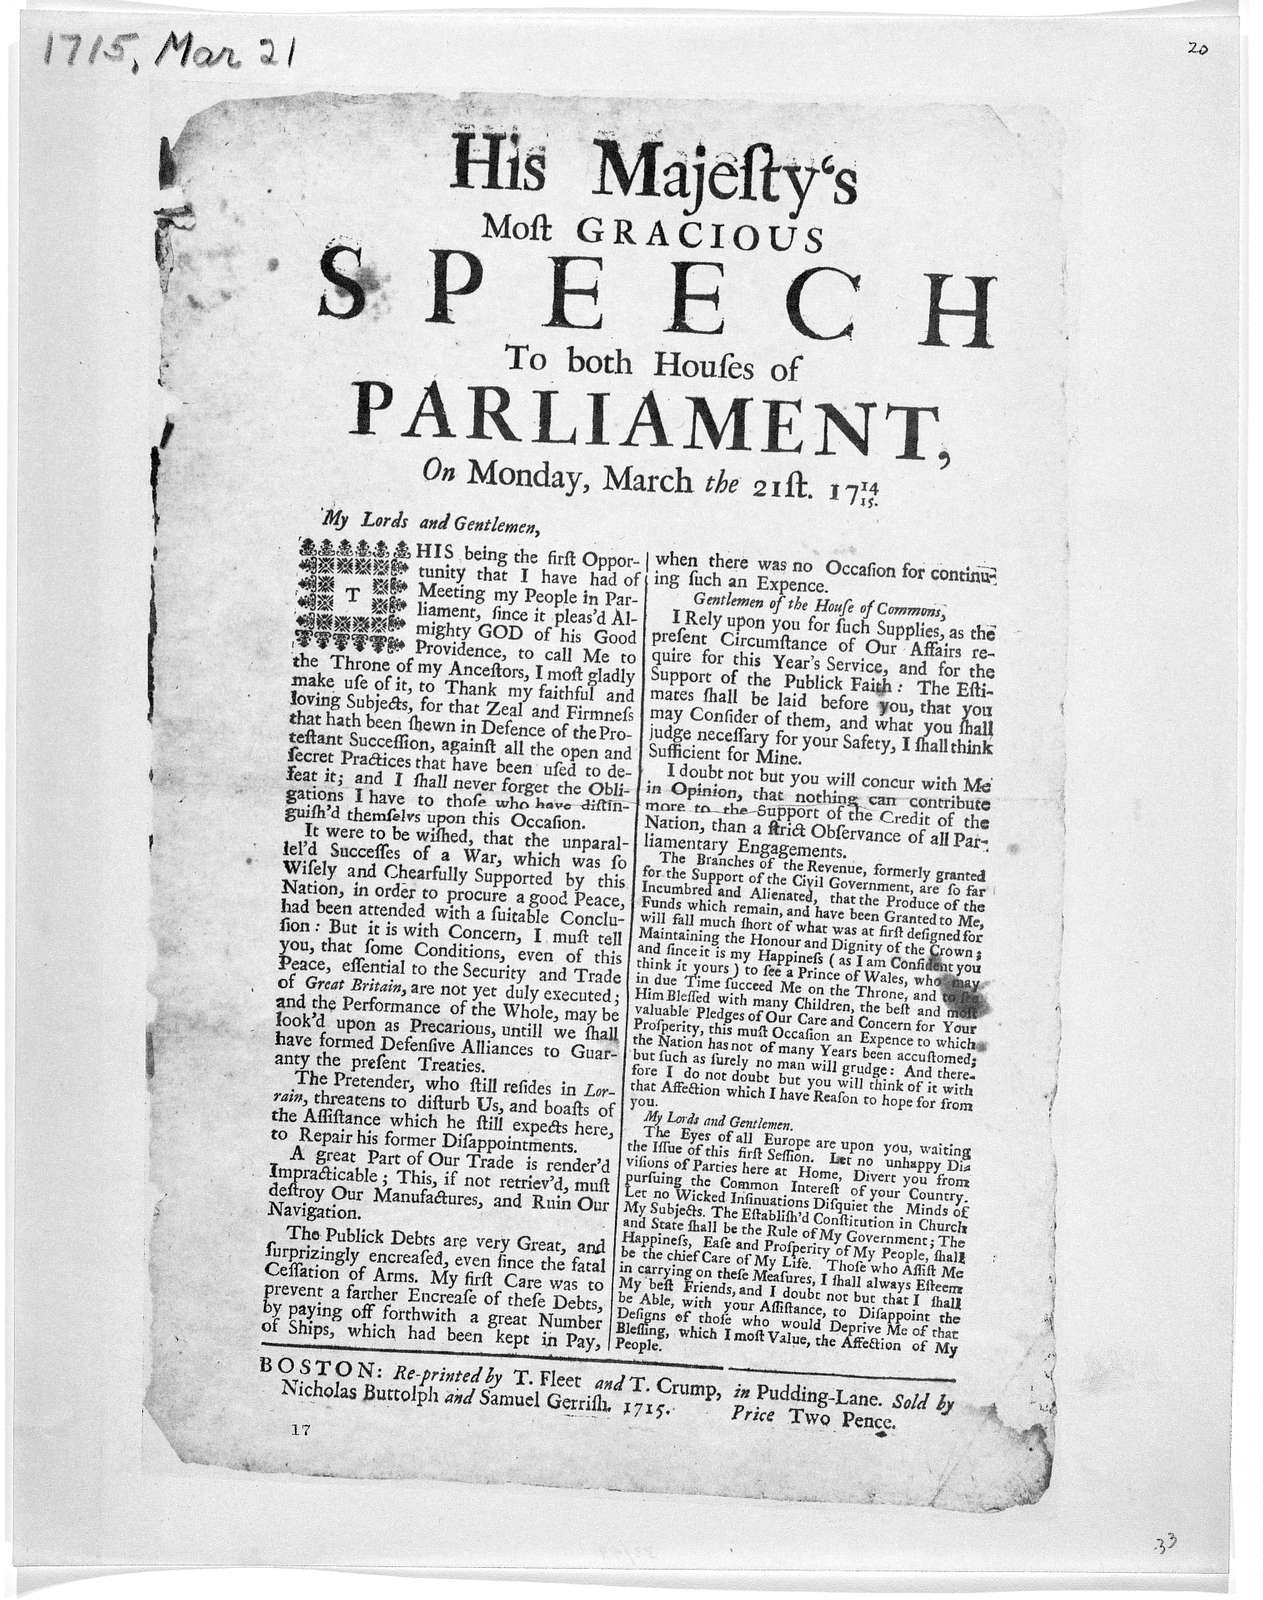 His Majesty's most gracious speech to both Houses of Parliament, on Monday, March the 21st, 1714/15 [blank] Boston: Re-printed by T. Fleet and T. Crump. In Pudding-Lane. Sold by Nicholas Buttolph and Samuel Gerrish 1715.